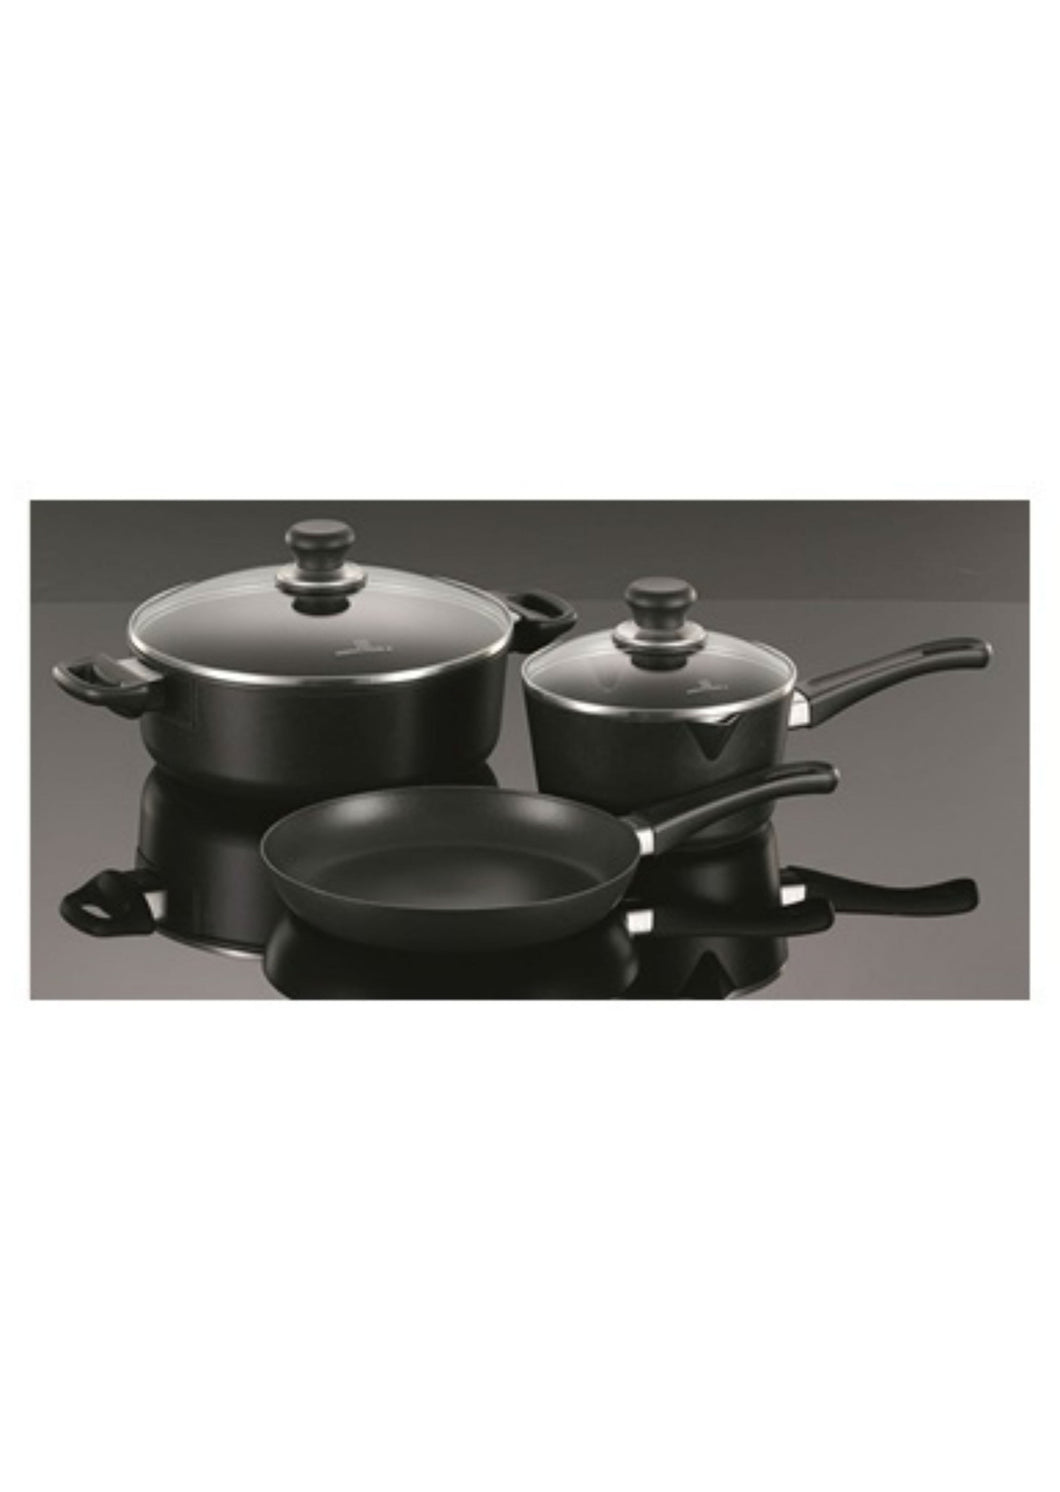 Scanpan Induction+ 3 Piece Set